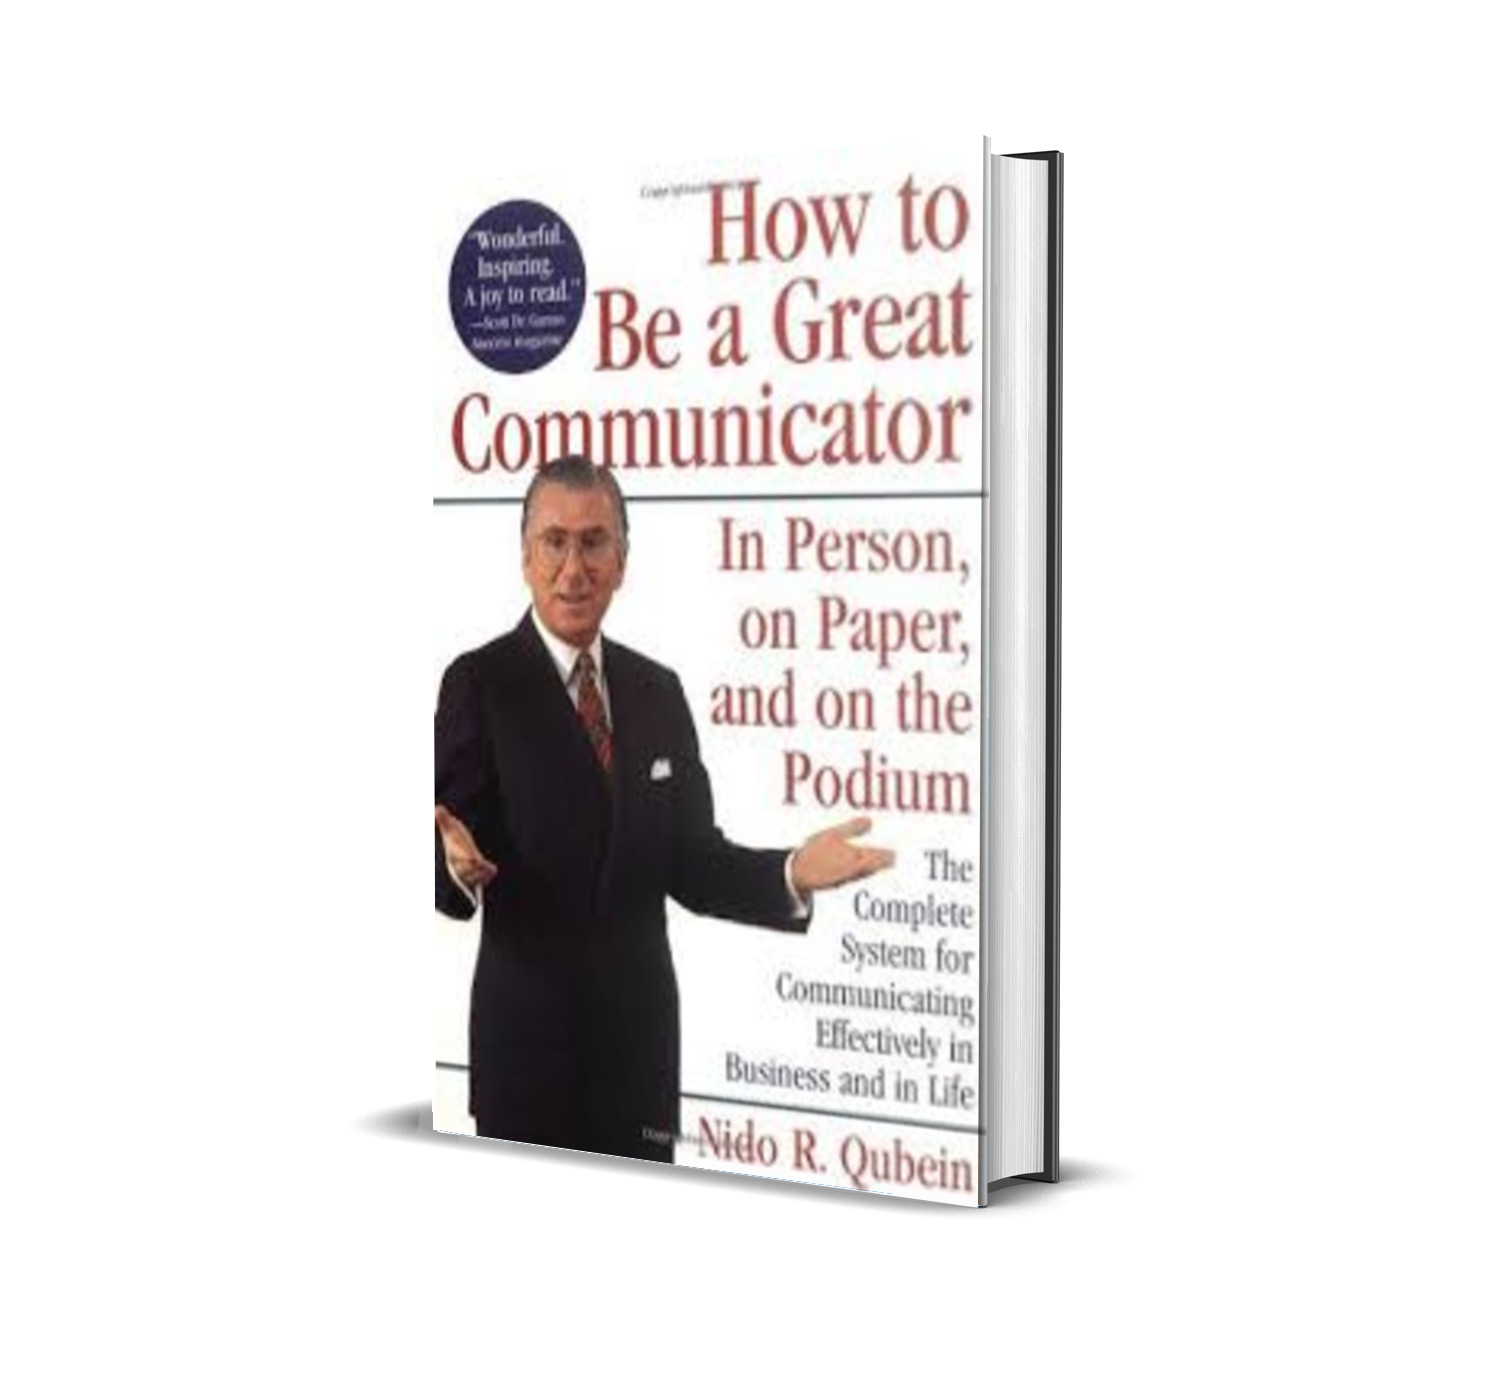 How to be a great Communicator- Nido Qubein